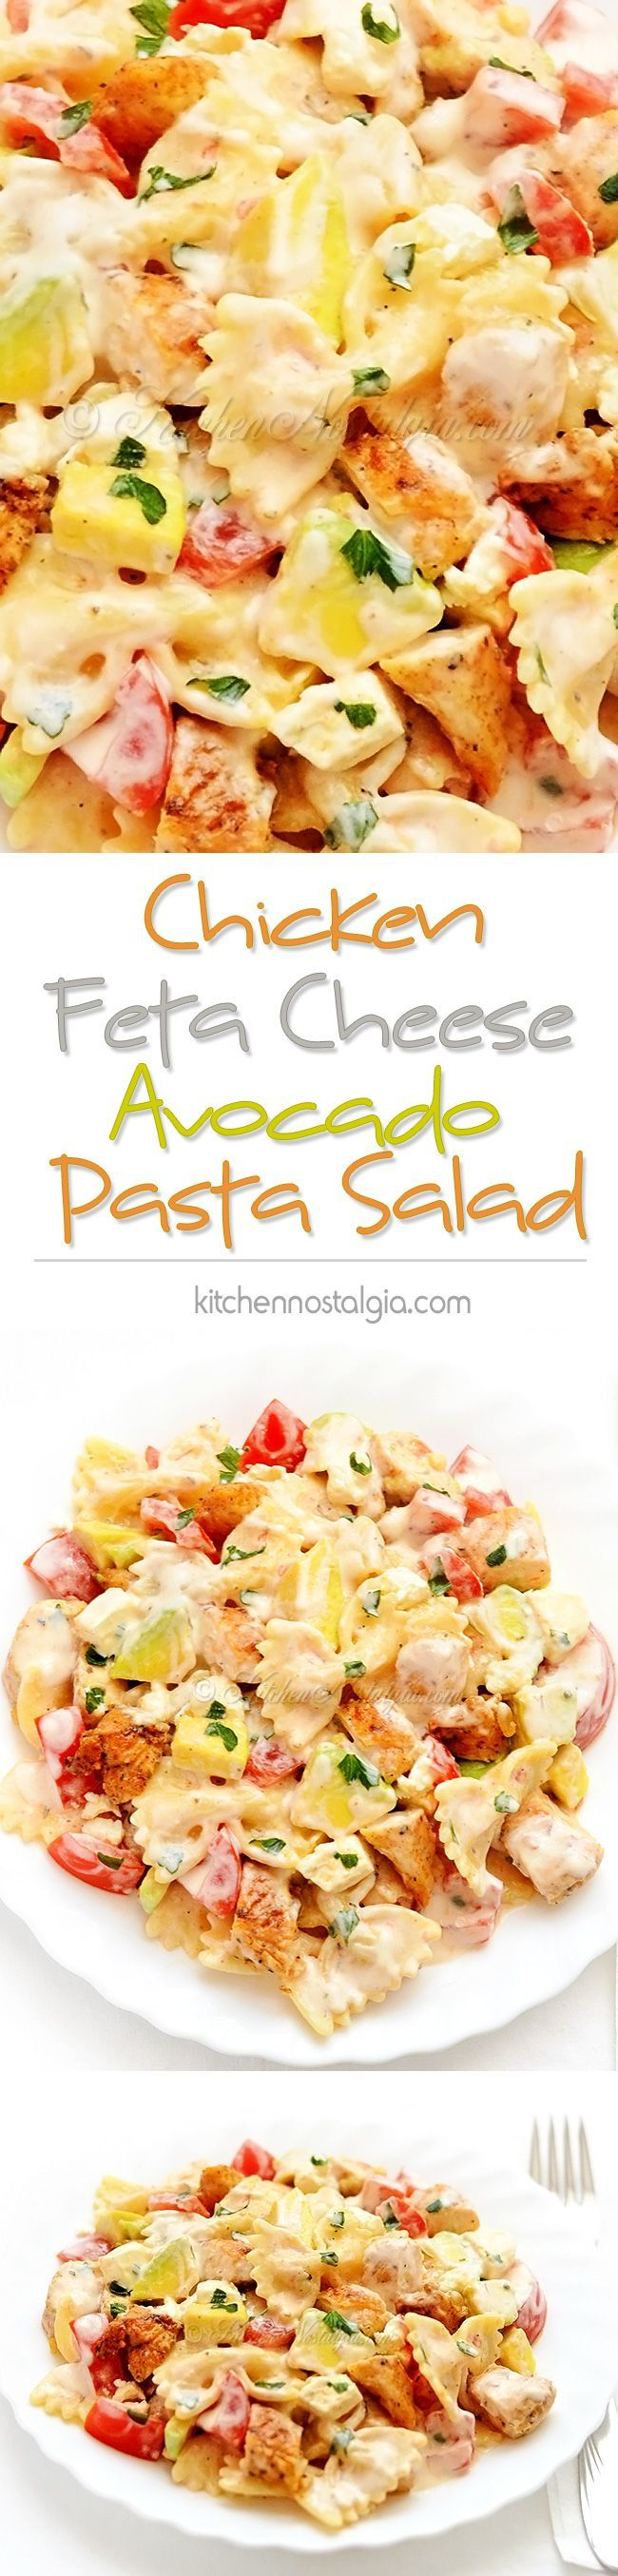 Chicken Feta Cheese Pasta Salad with avocados, tomatoes and creamy dressing;  incredibly good for lunch or your picnic table; better than deli salad! - kitchennostalgia.com